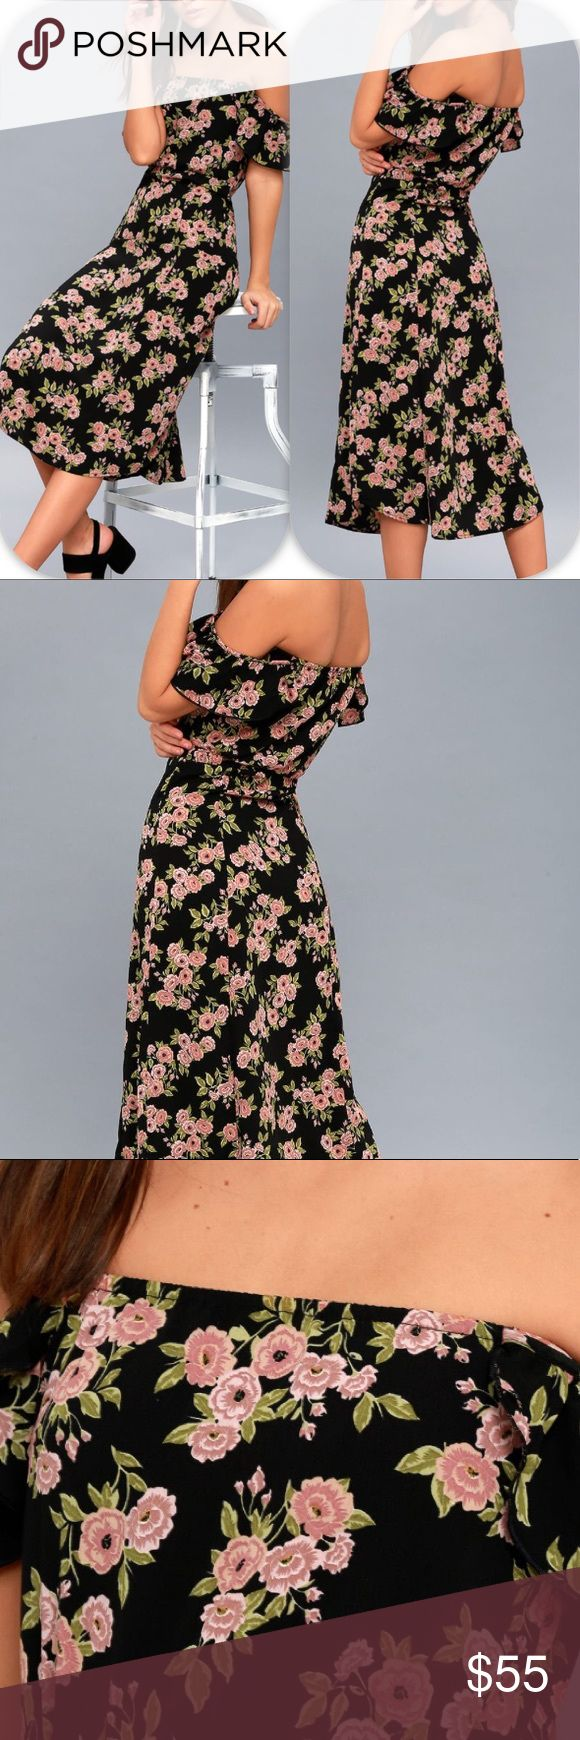 NWT XS FLORAL LULU'S OFF SHOULDER DRESS BLACK Brand: Lulu's sweeter than you floral print off the shoulder midi dress             Condition: New with tag || Size xs Extra Small   📌NO  TRADES  🛑NO LOWBALL OFFERS  ⛔️NO RUDE COMMENTS  🚷NO MODELING  ☀️Please don't discuss prices in the comment box. Make a reasonable offer and I'll either counter, accept or decline.   I will try to respond to all inquiries in a timely manner. Please check out the rest of my closet, I have various brands. Some…